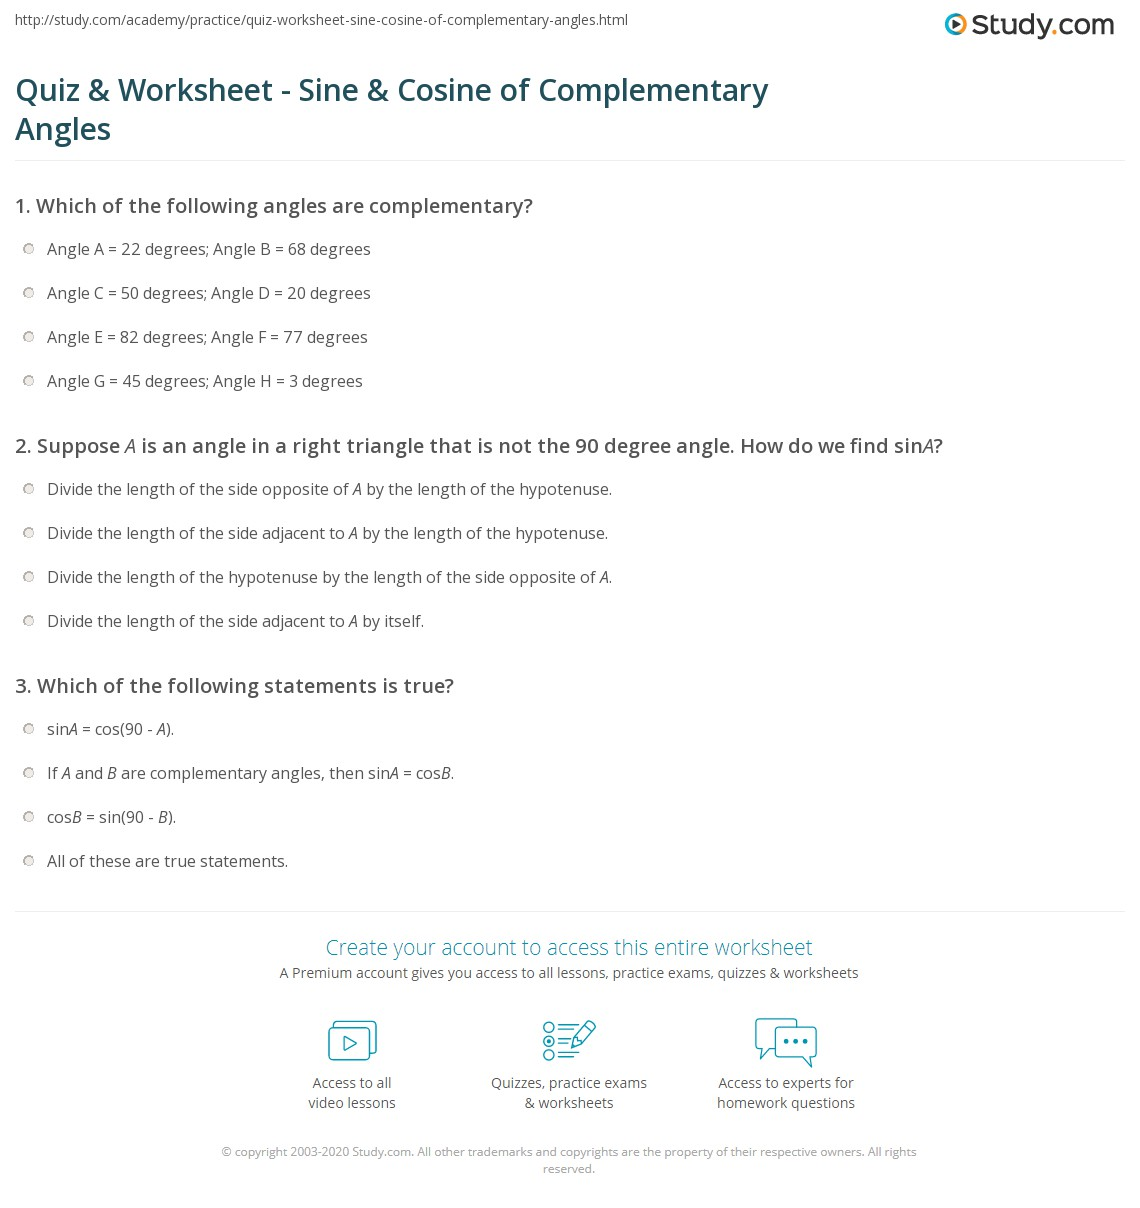 quiz worksheet sine cosine of complementary angles. Black Bedroom Furniture Sets. Home Design Ideas